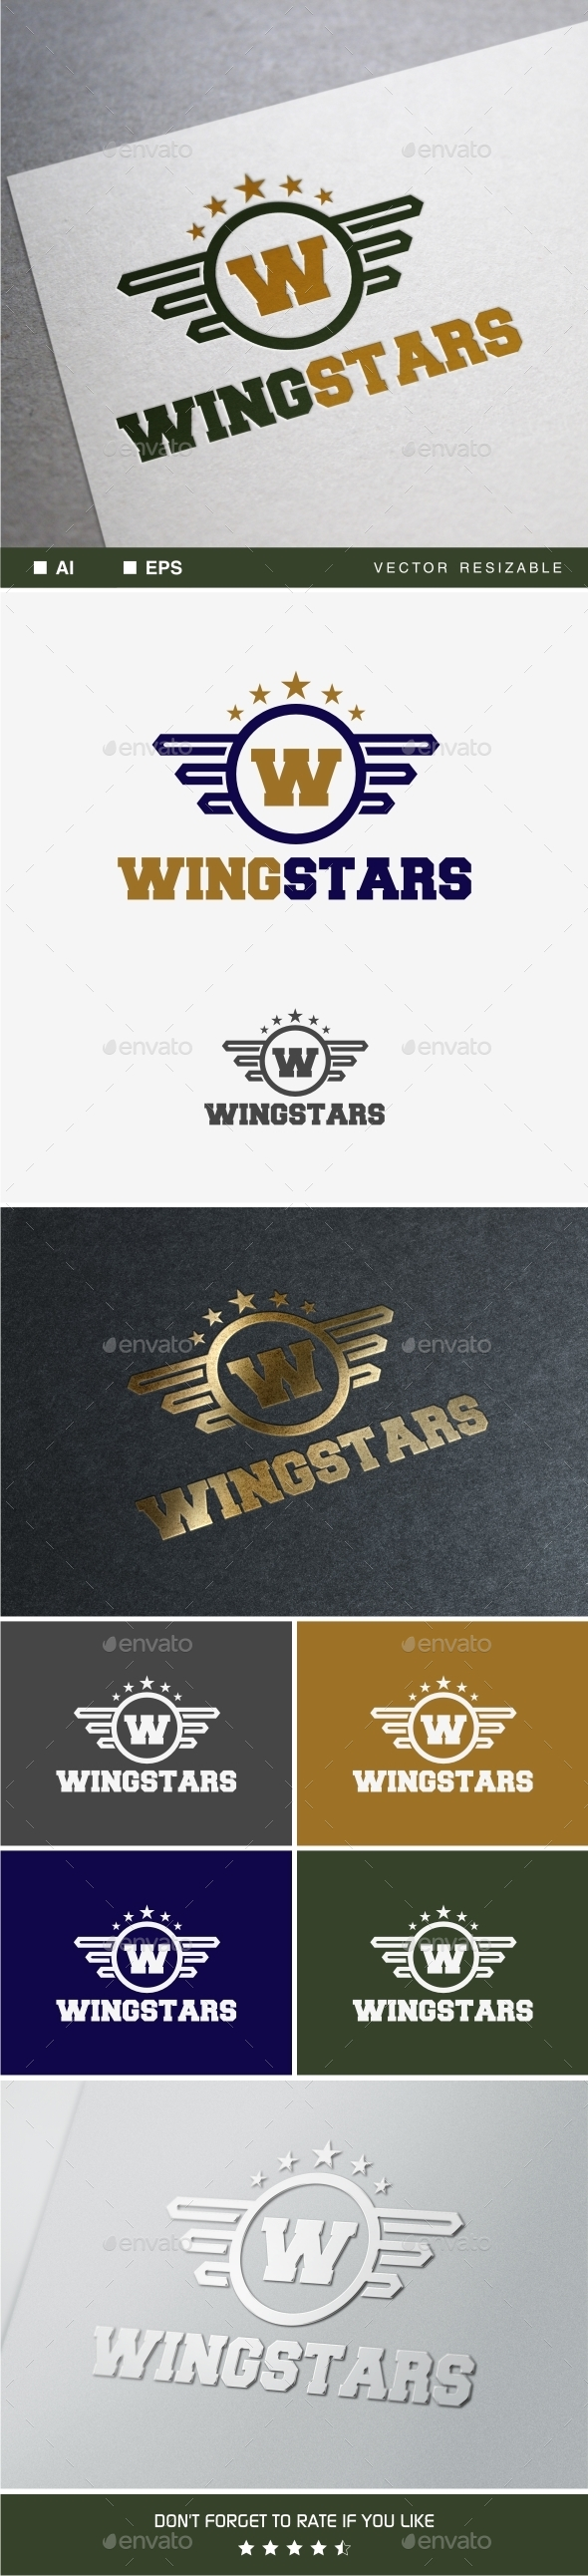 GraphicRiver Wingstars Logo 9855115